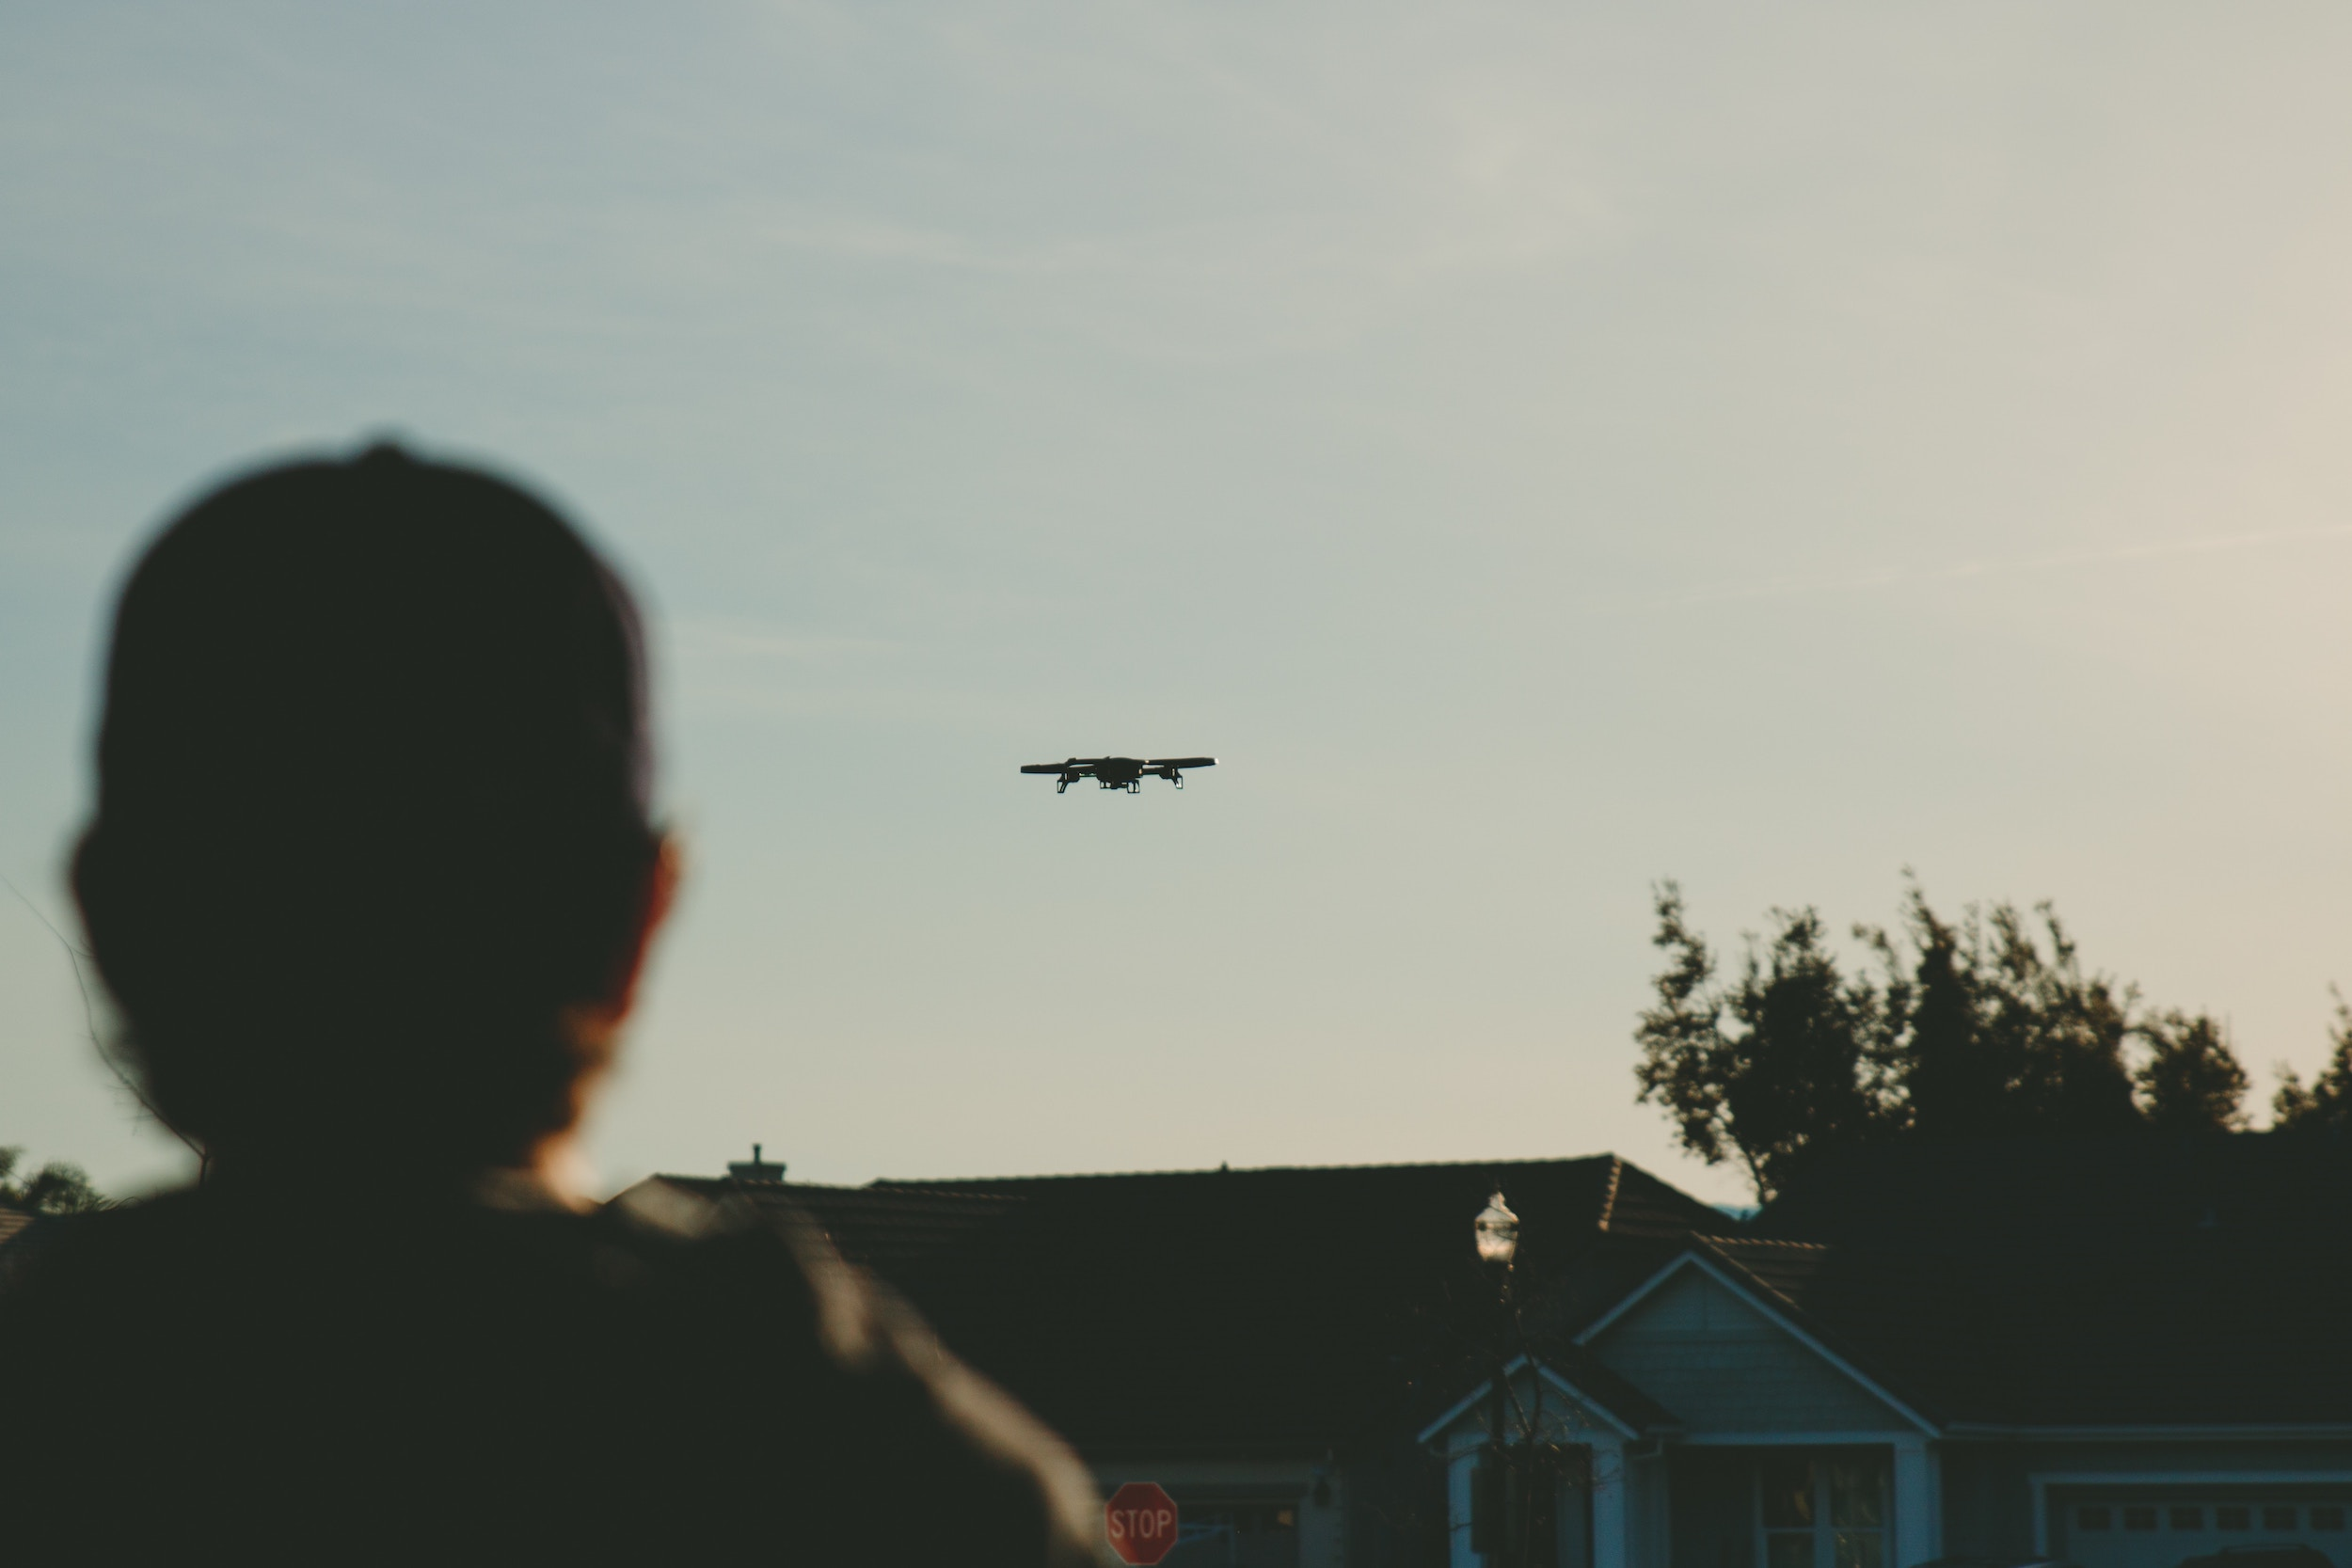 A drone, flying in to the sunset above houses. GVC Training by 3iC